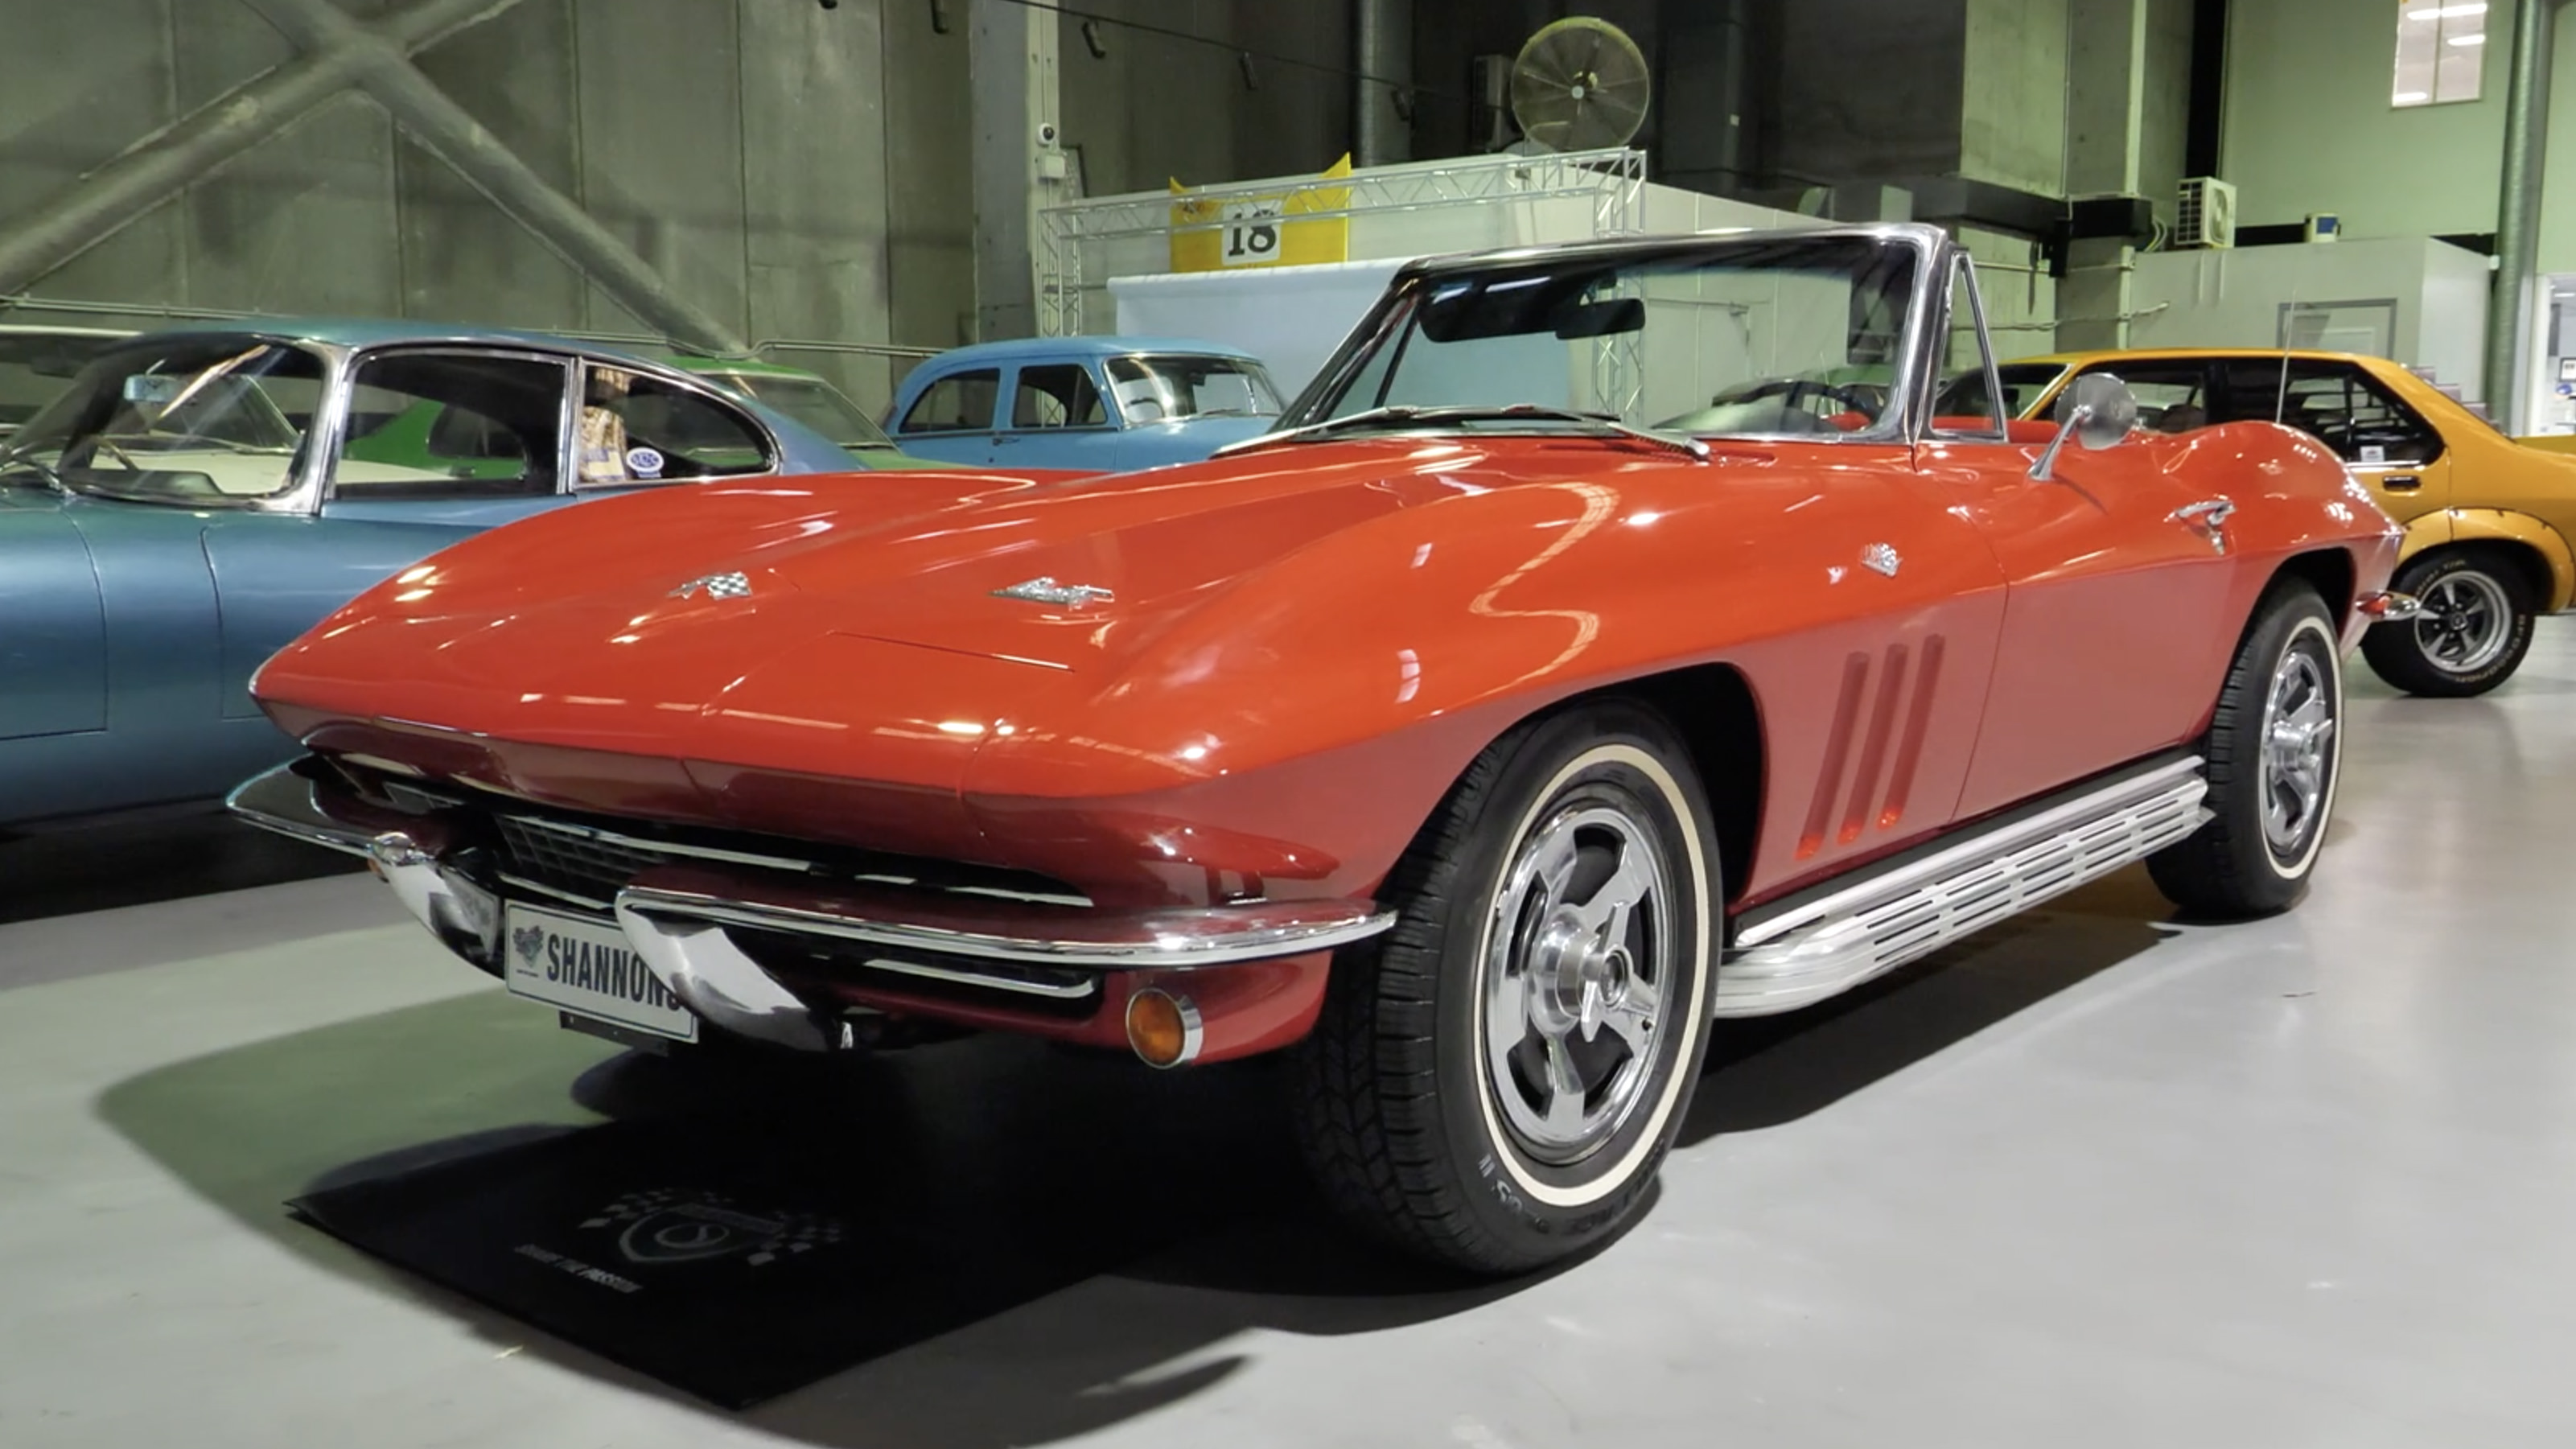 1966 Chevrolet Corvette 327/350 'Manual' Convertible - 2020 Shannons Spring Timed Online Auction